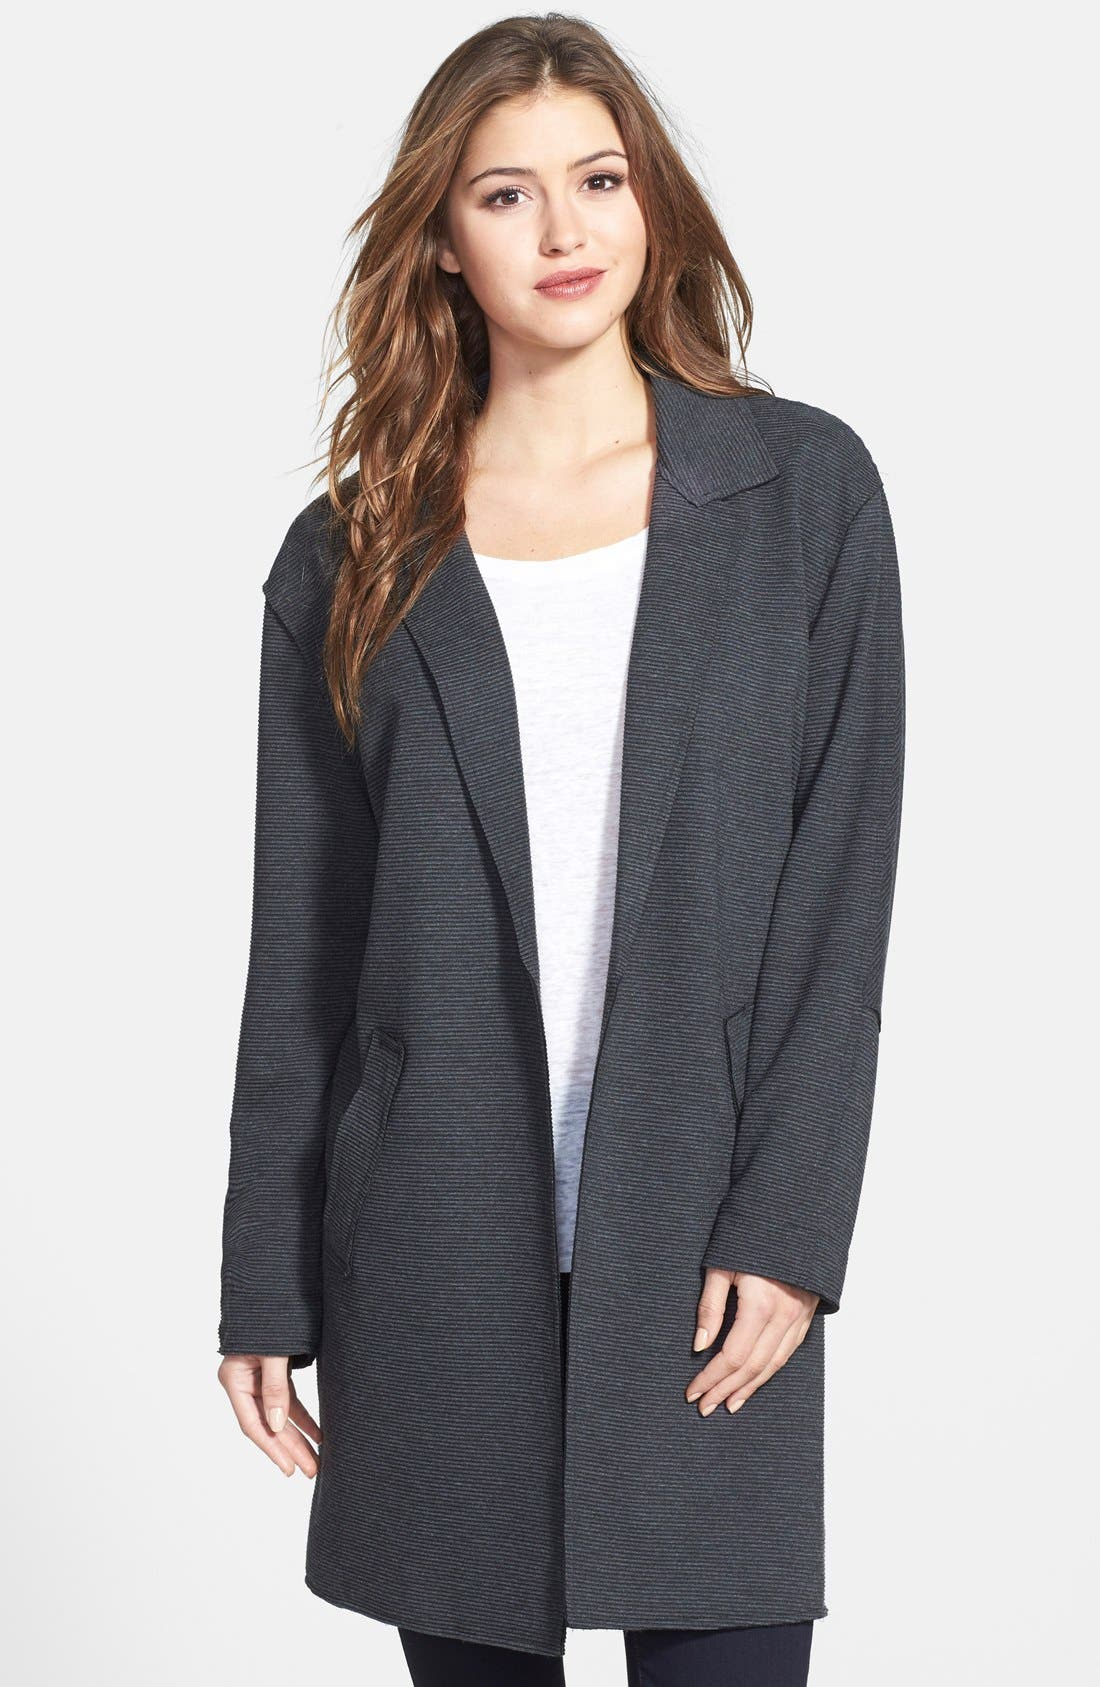 Alternate Image 1 Selected - Max & Mia 'Oversize' Cardigan (Women)